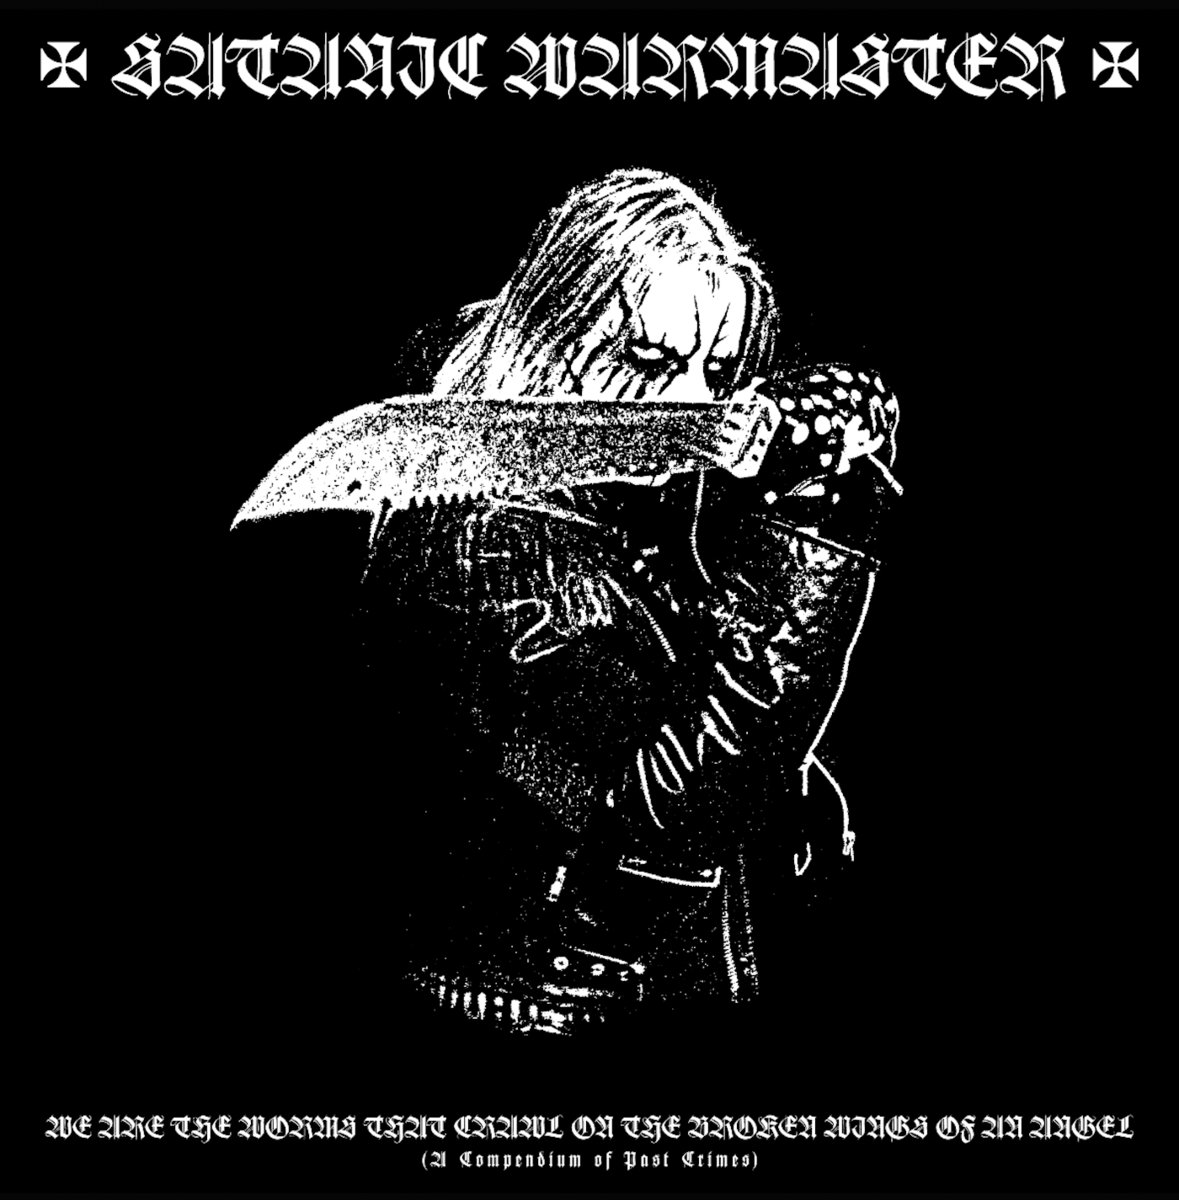 SATANIC WARMASTER - We Are The Worms That Crawl on the Broken Wings of an Angel (Double LP)